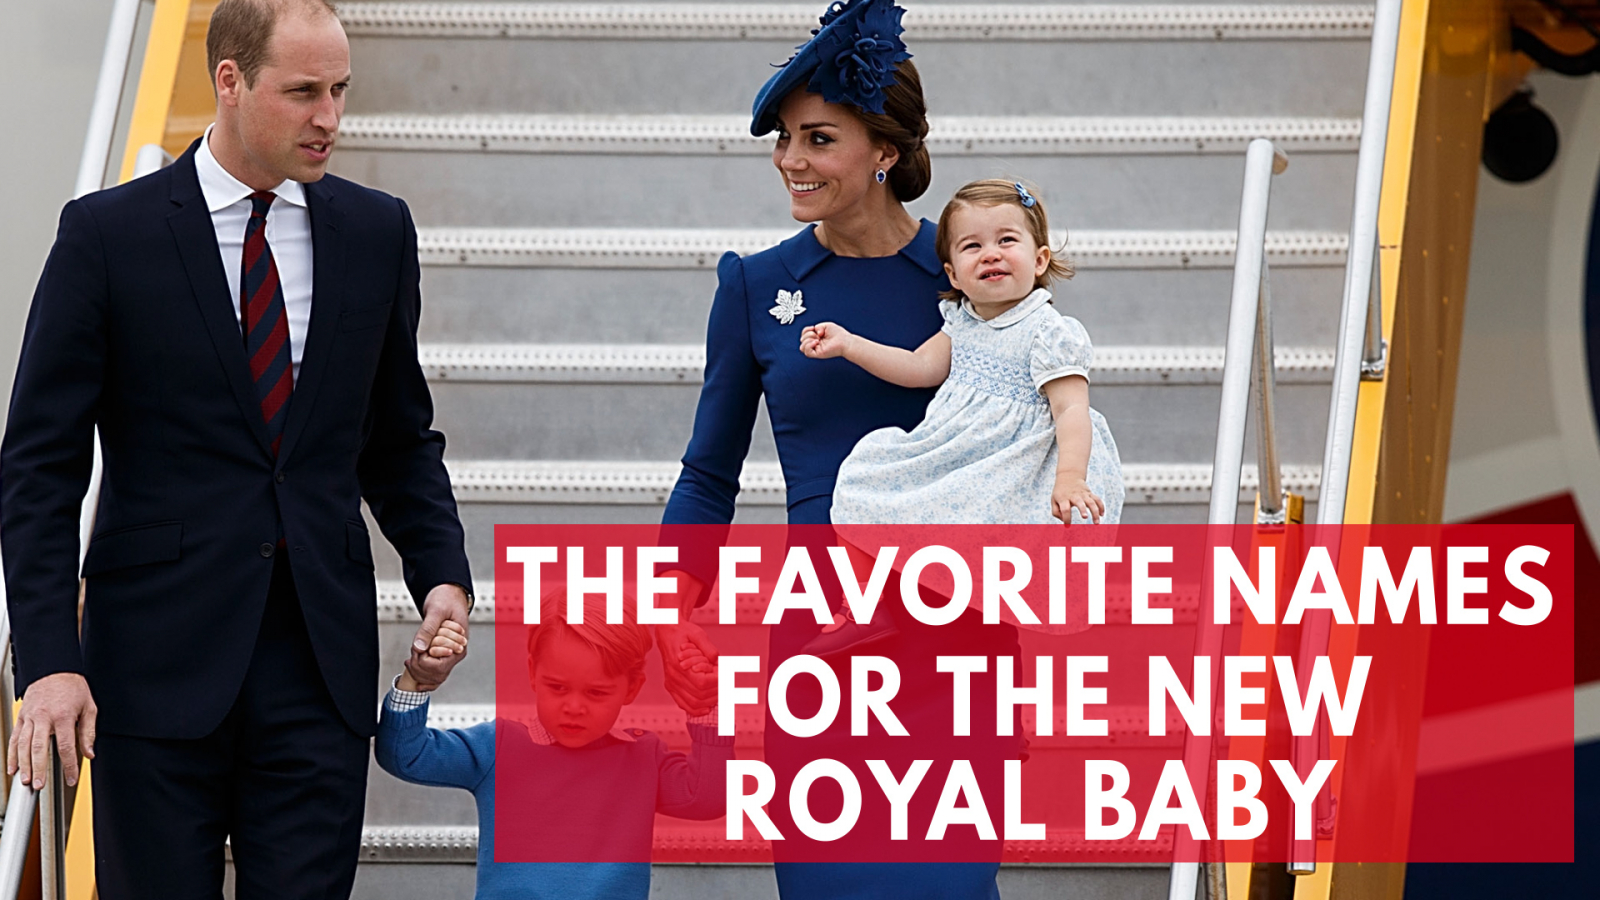 What Will The Royal Baby Be Called?